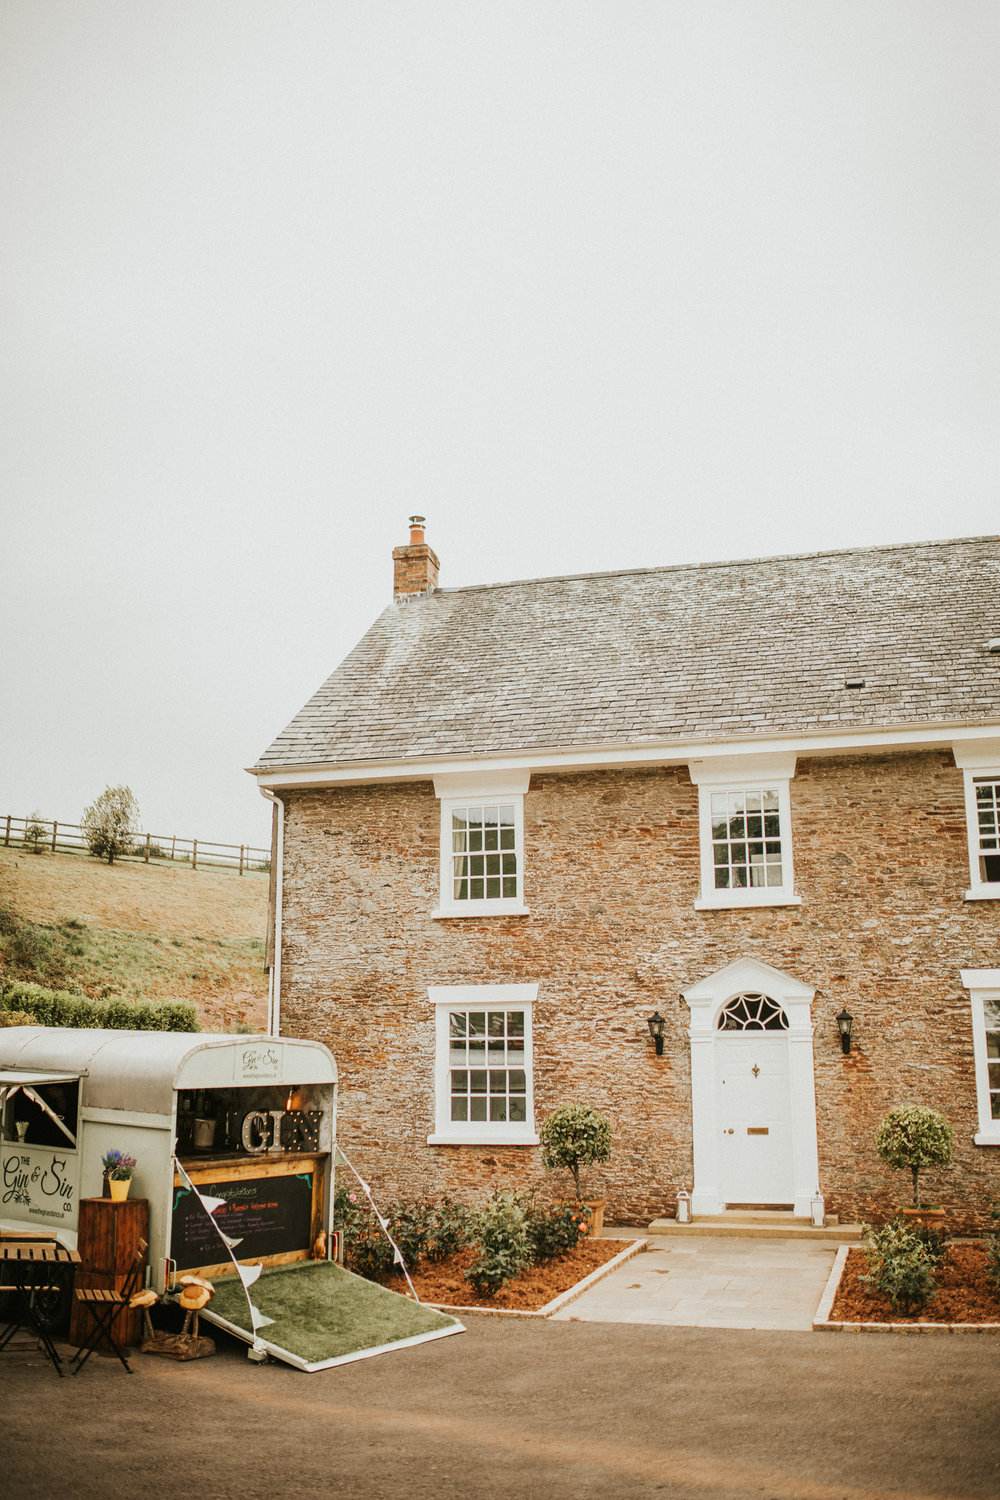 Rach-Stefan-Wedding-Devon-South-Slapton-Sands-Boho-Photography-Darina-Stoda-147.jpg